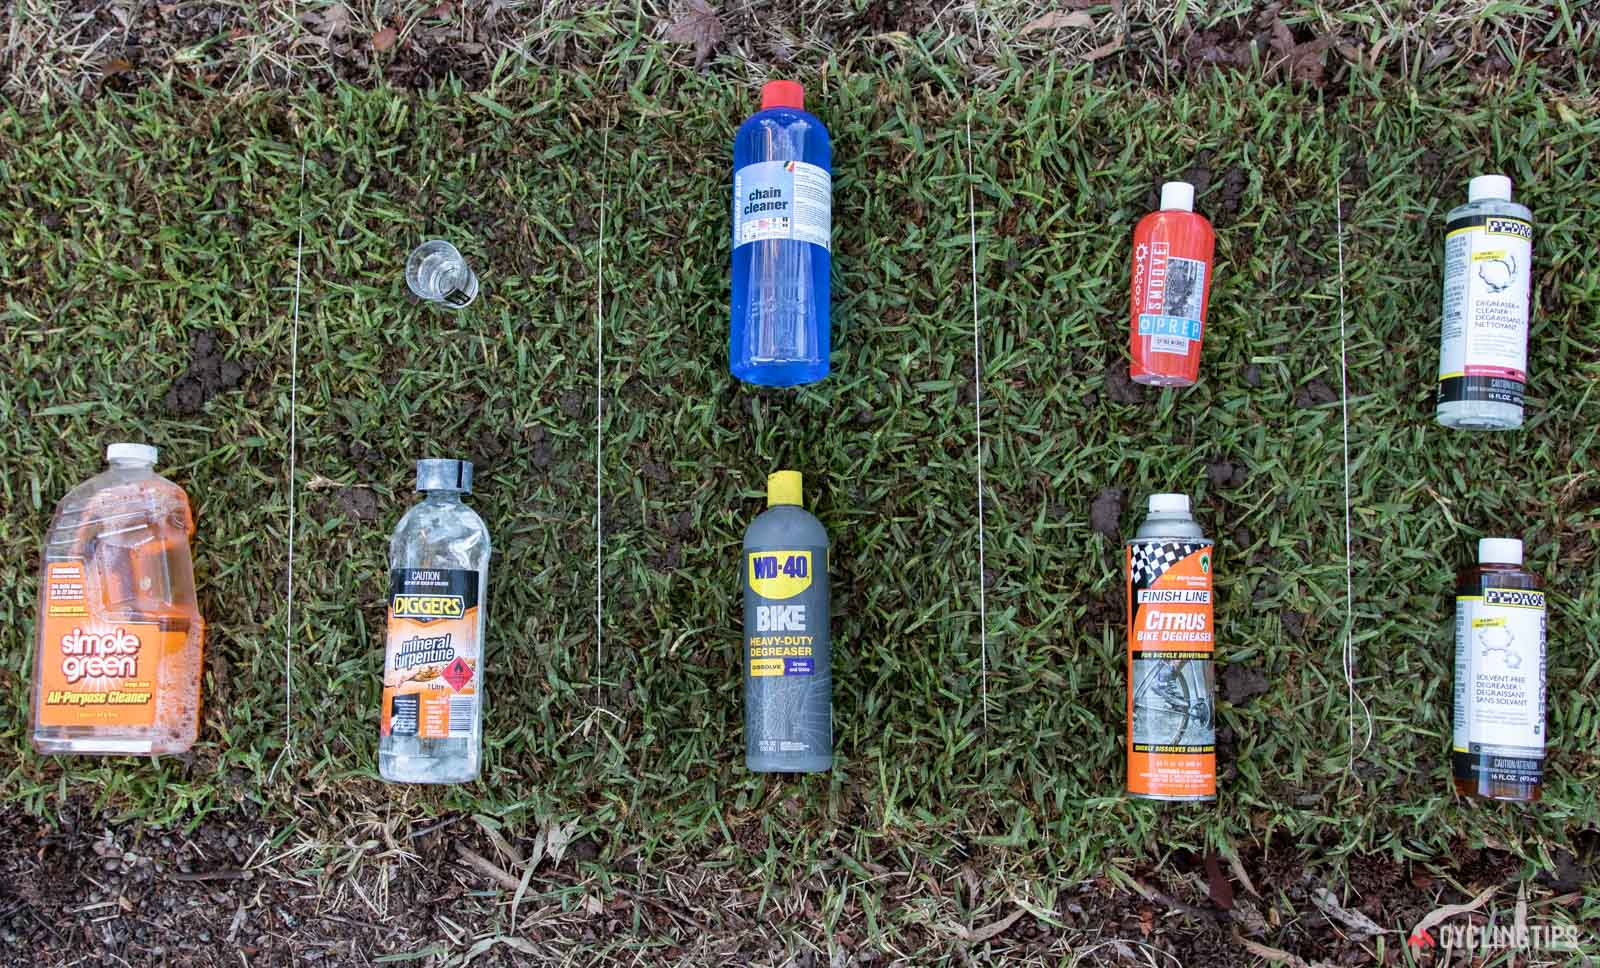 Bicycle degreaser on grass test